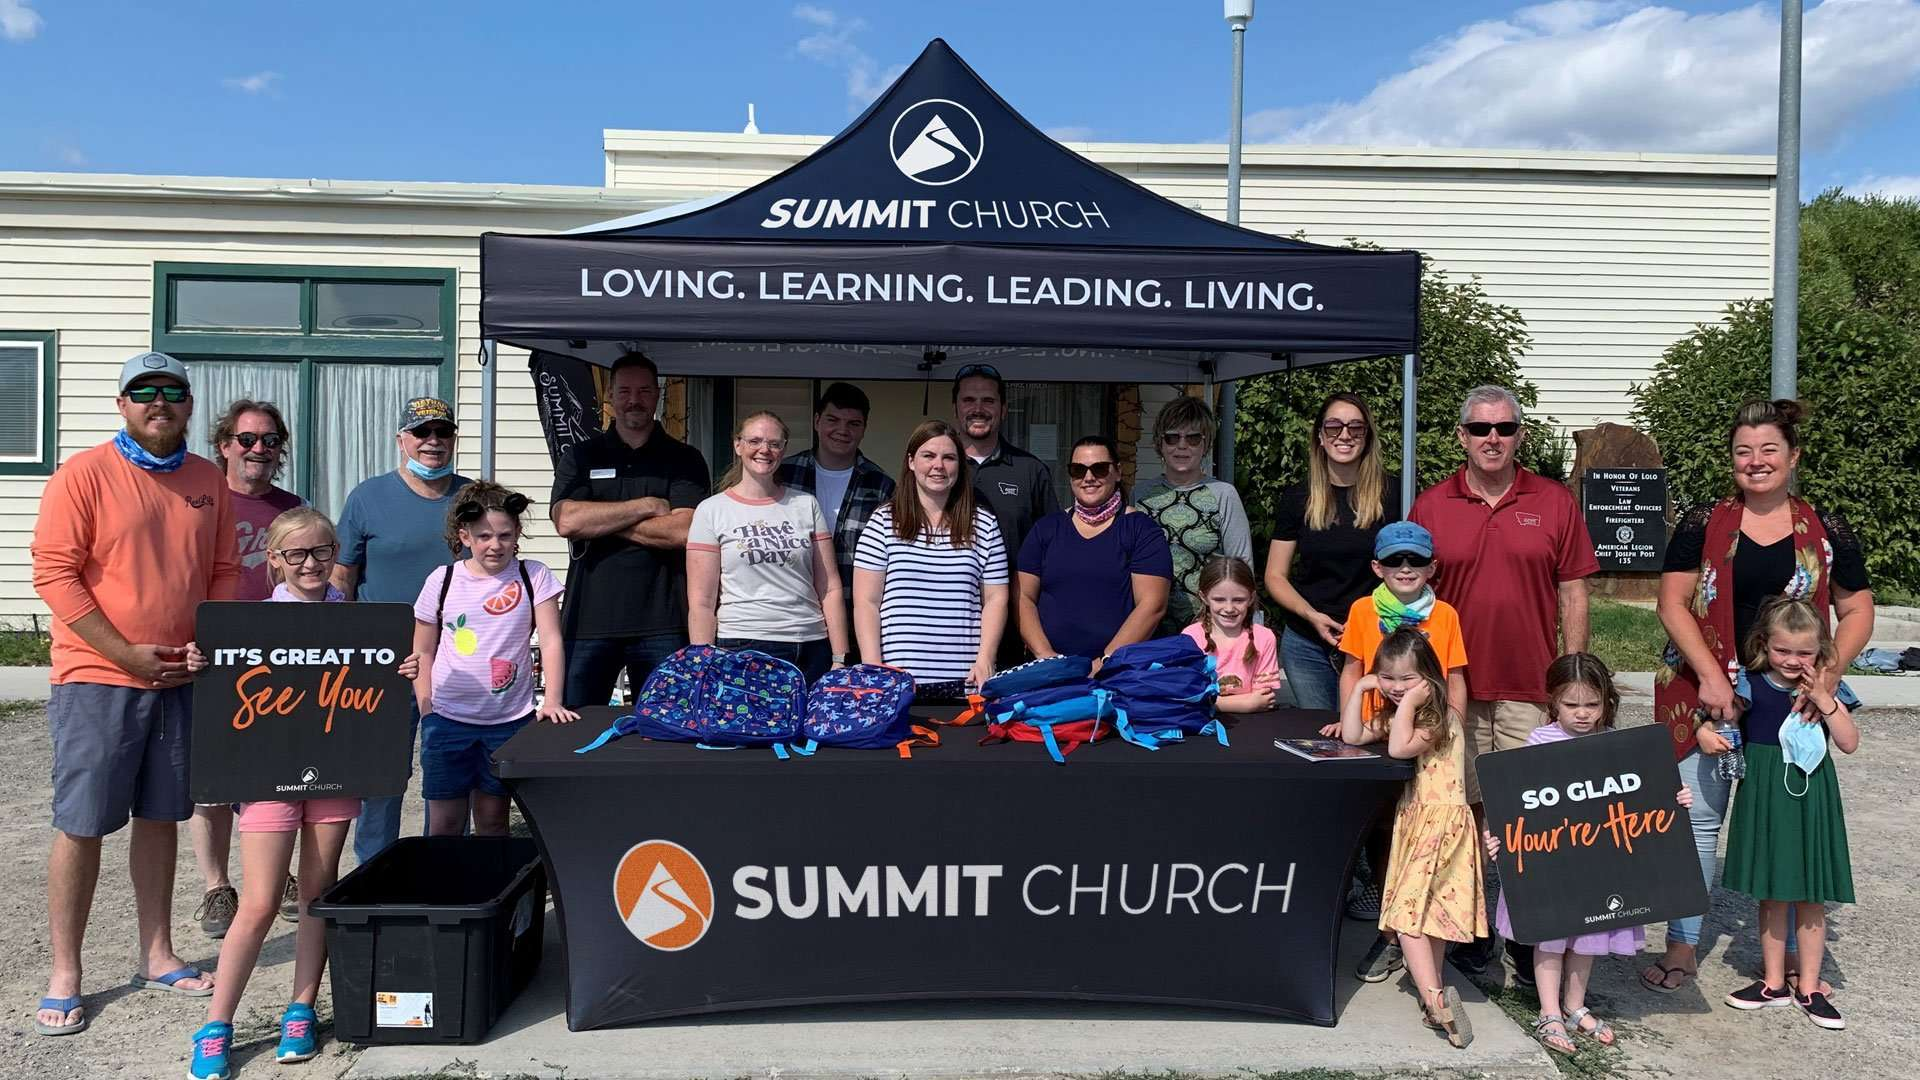 Summit Church community backpack giveaway in Missoula MT